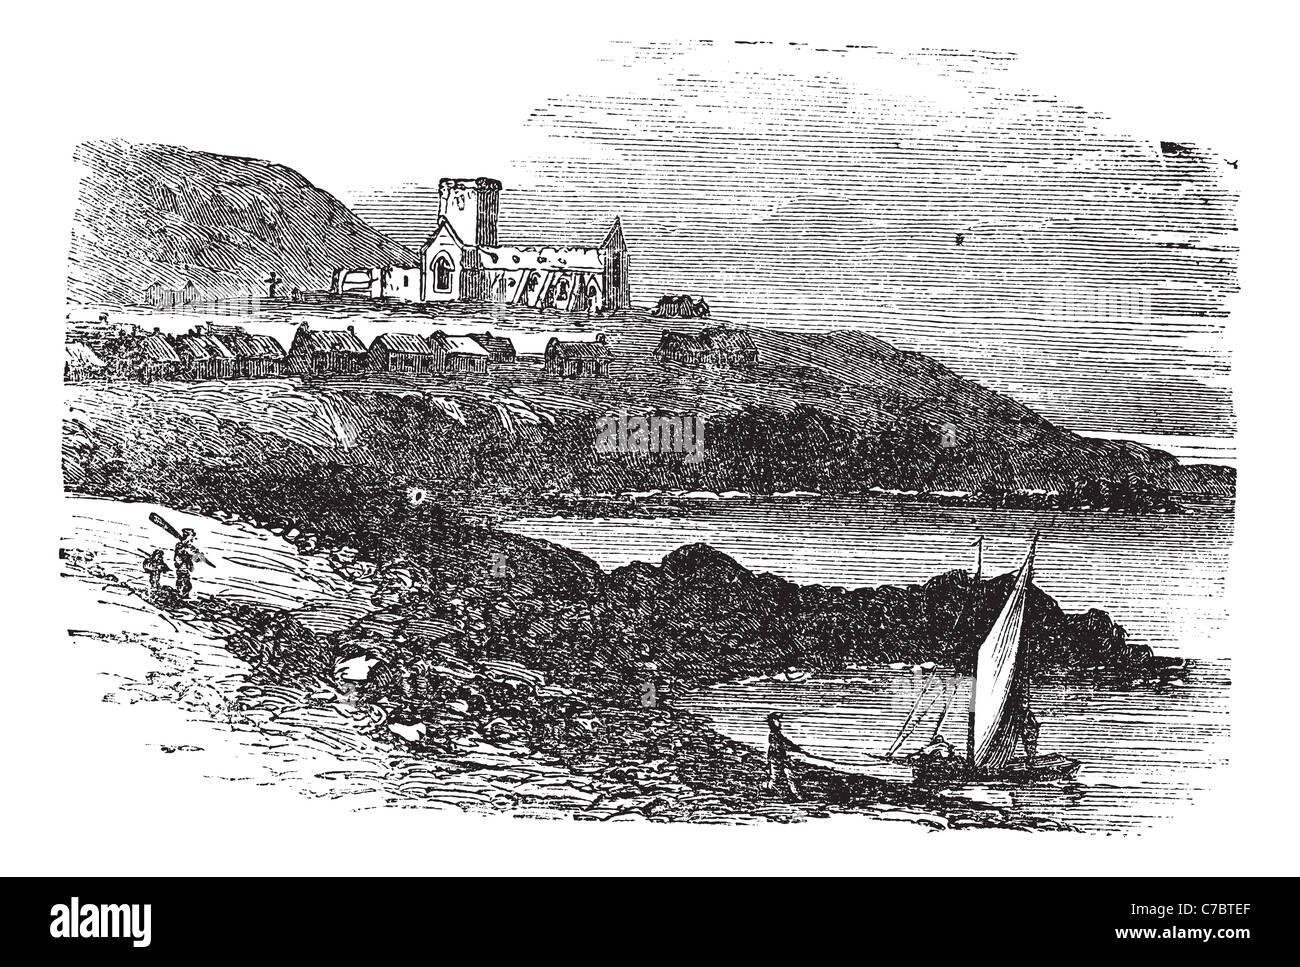 The ruins of St Mary's Abbey in Iona, Scotland, during the 1890s, vintage engraving. Stock Photo